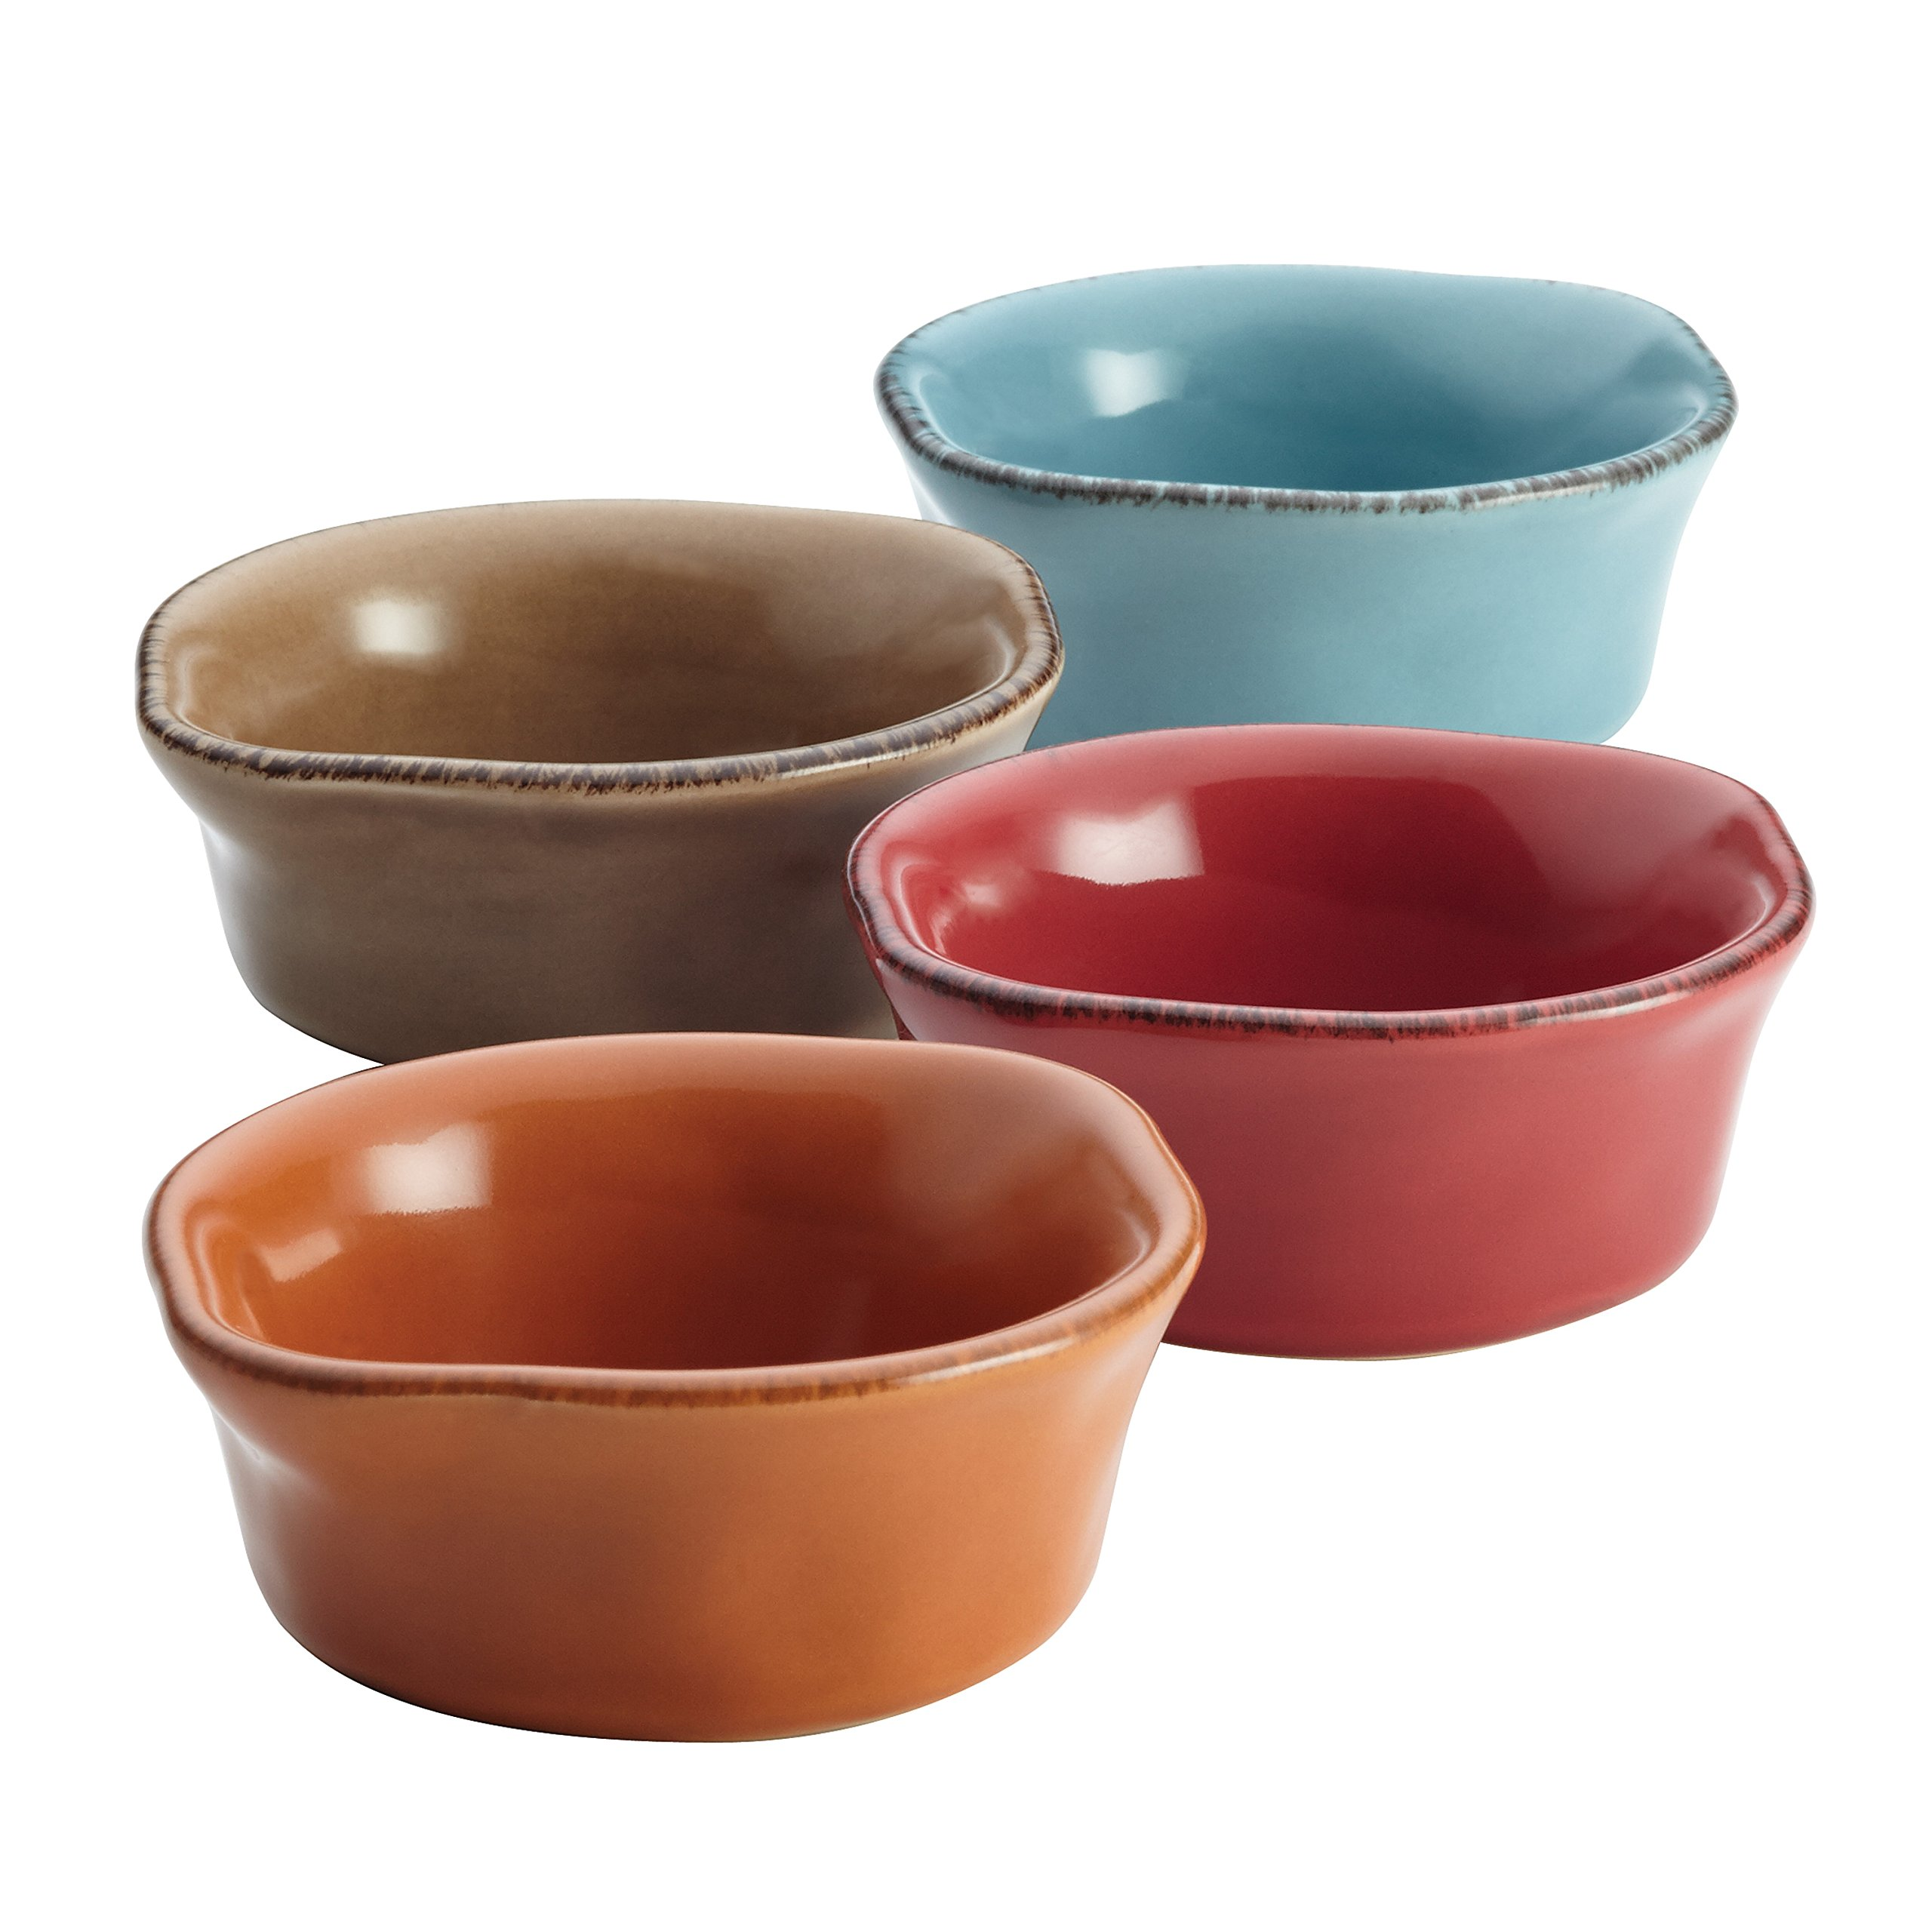 Rachael Ray 57422 4-Piece Cucina Stoneware Dipping Cup Set, Assorted